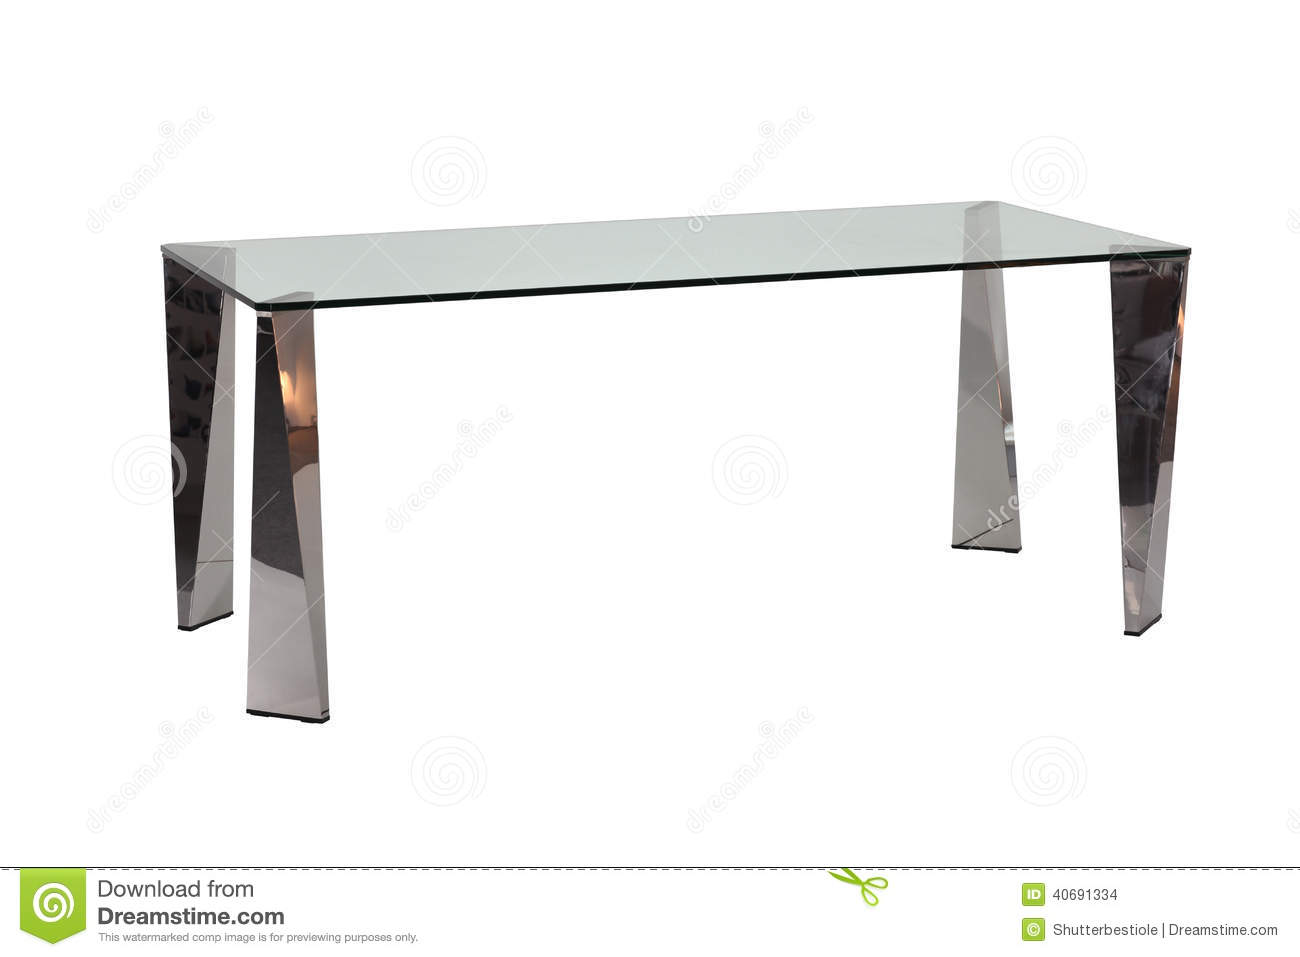 Modern Glass Top Dining Table Stock Photo Image 40691334 : modern glass top dining table edged out shot white background 40691334 from www.dreamstime.com size 1300 x 957 jpeg 52kB